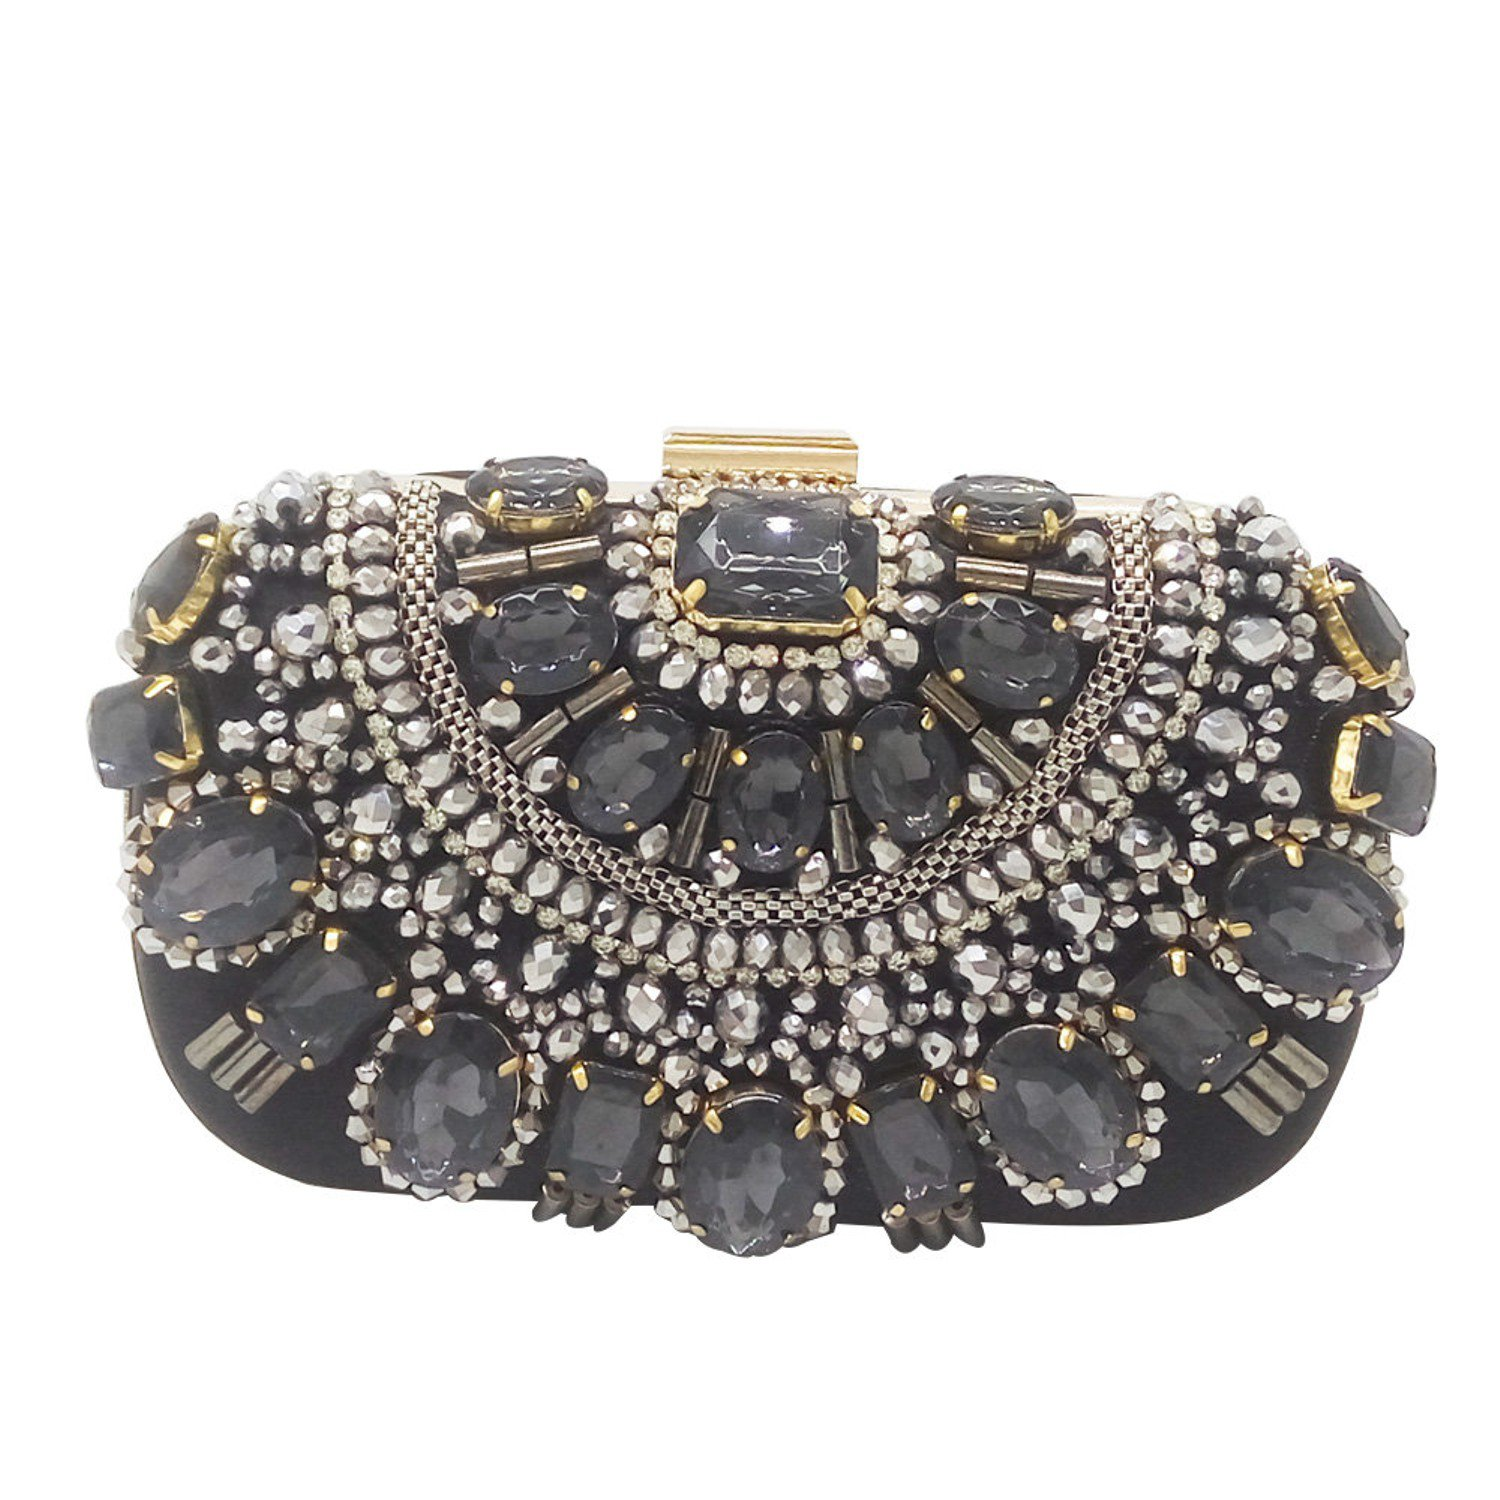 Women's Black Crystal Evening Clutch in Metal with Silver Beads